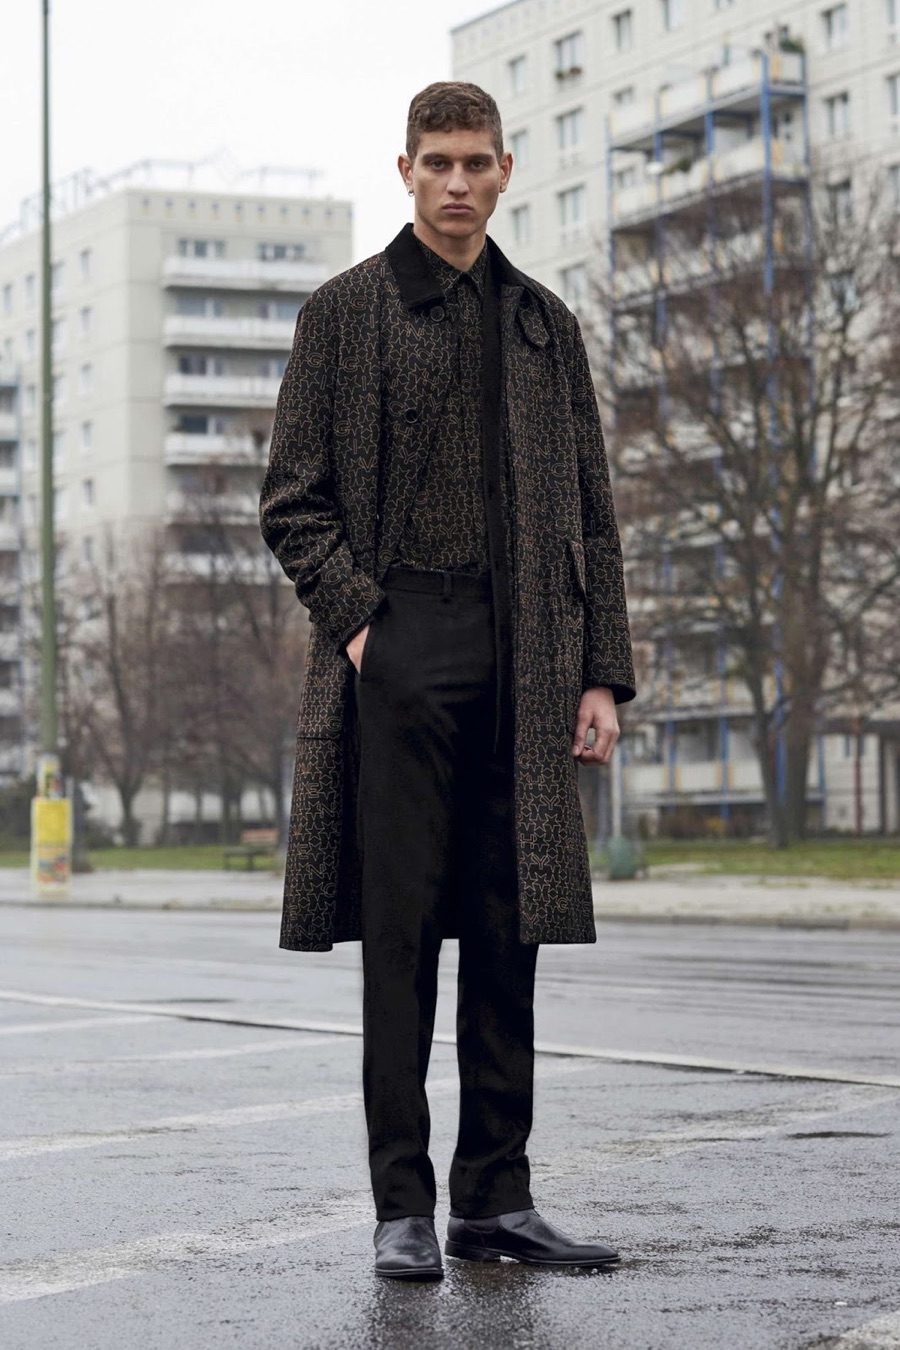 Givenchy Visits Berlin for Pre-Fall Collection